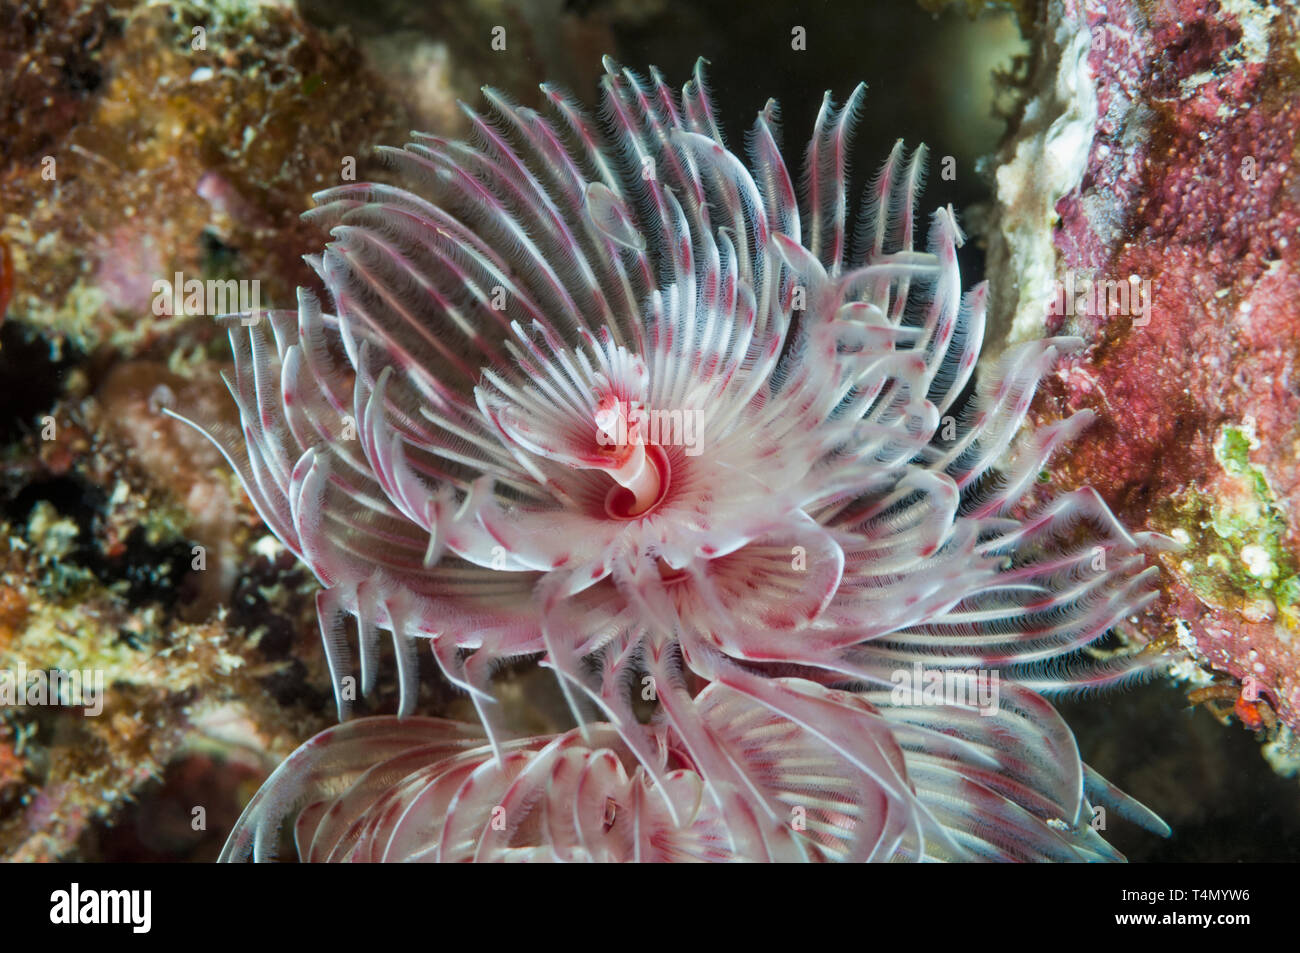 Magnificent tube worm, Feather duster worm [Protula magnifica].  North Sulawesi, Indonesia. Stock Photo